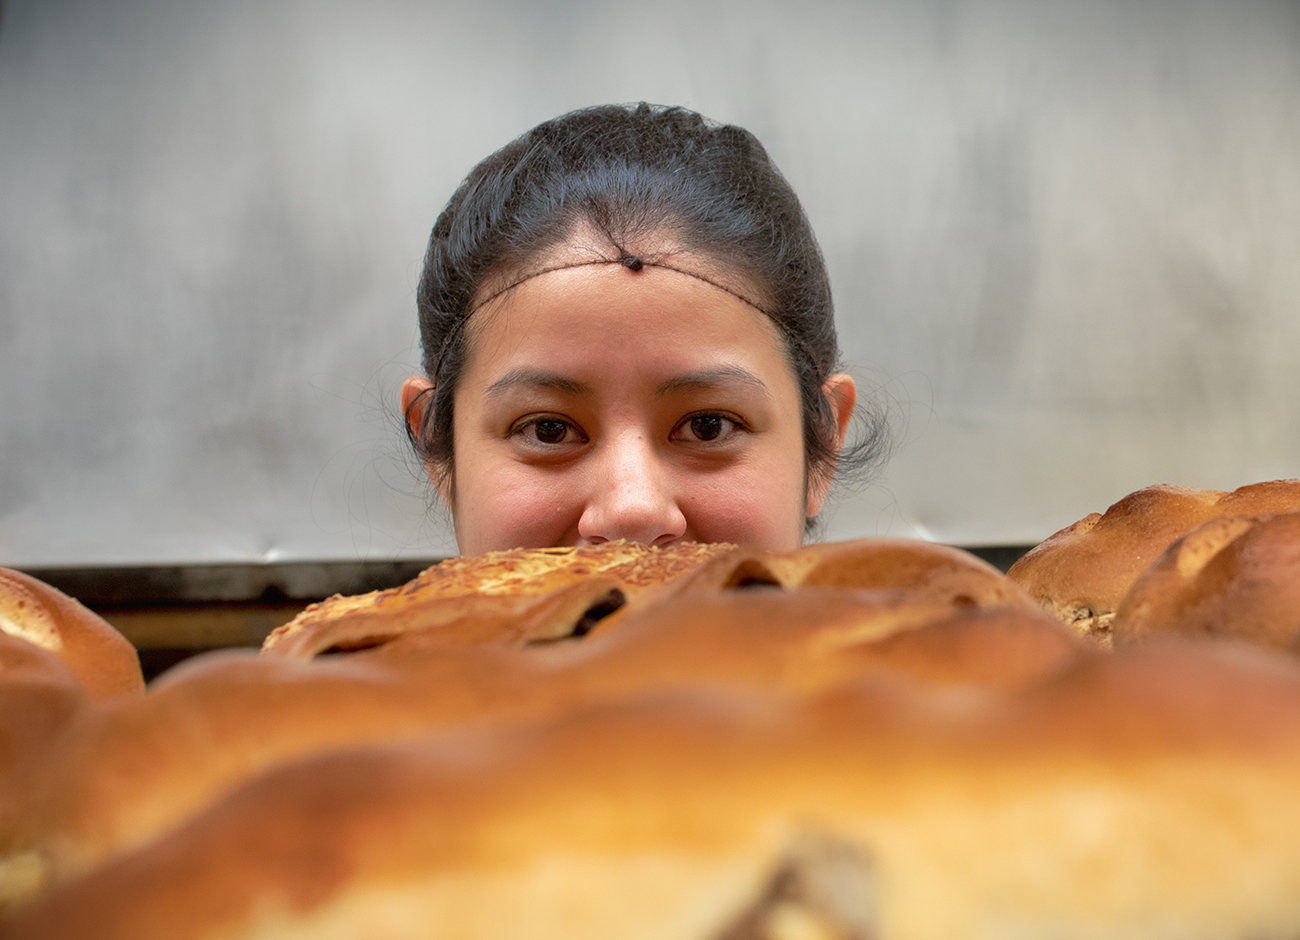 A face peeking from behind bread